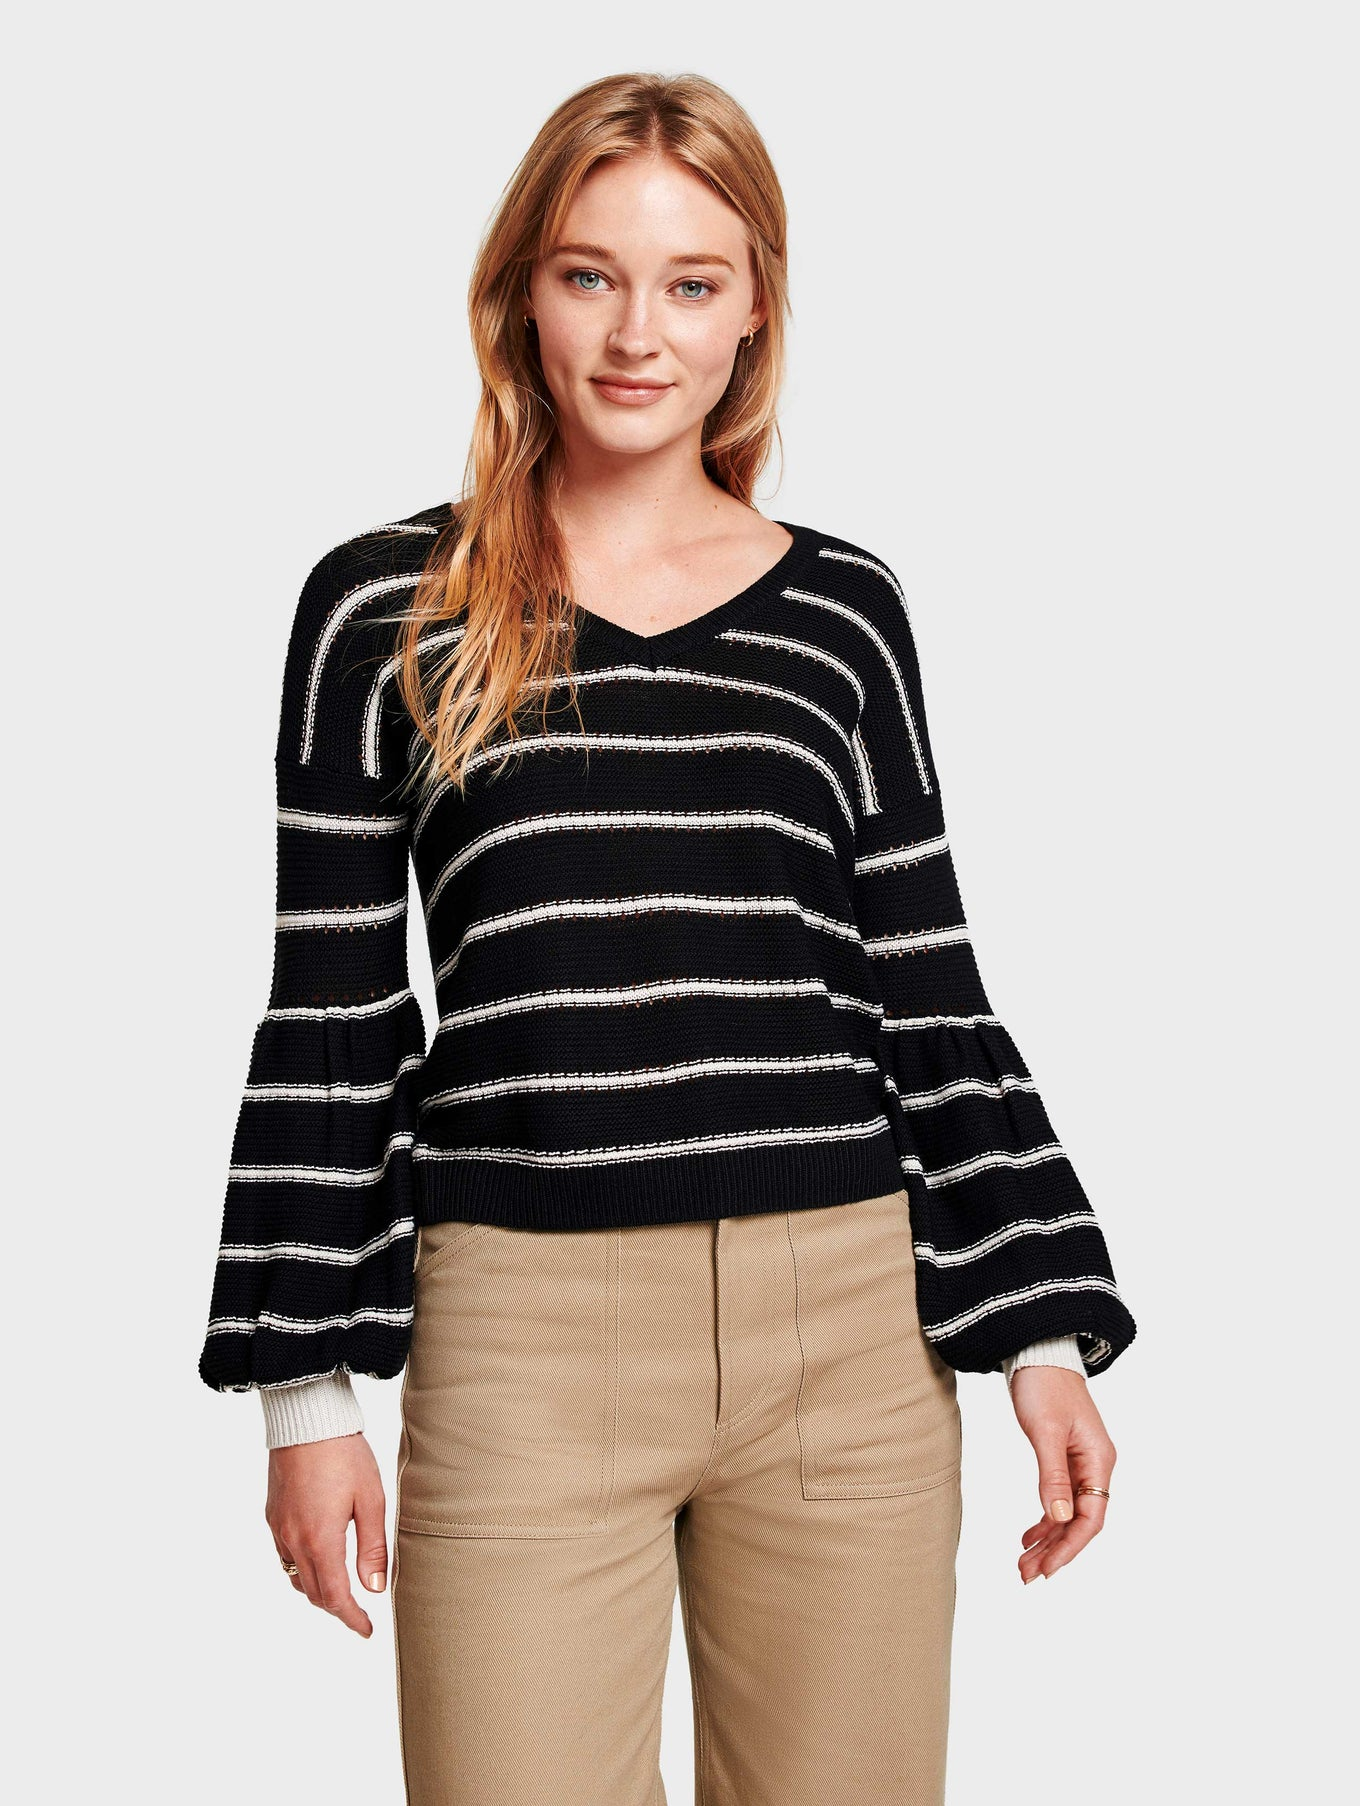 Jade Blend Striped Open V Neck